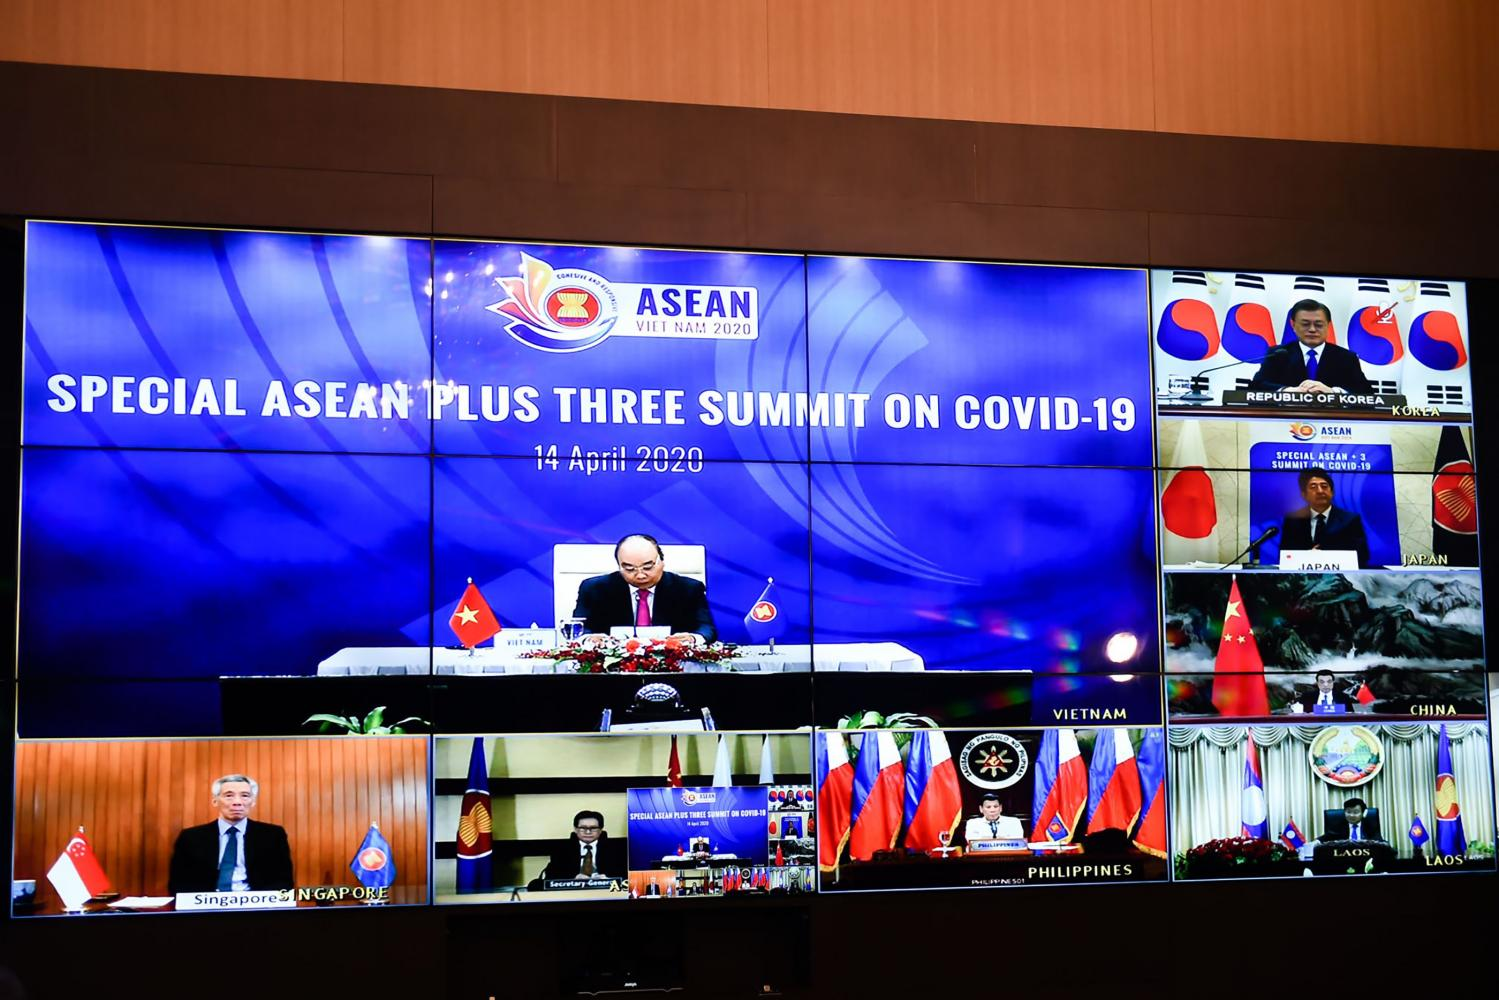 Multiple screens of a live video conference are seen at the special Association of Southeast Asian Nations Plus Three Summit on the Covid-19 coronavirus pandemic held in Hanoi.(AFP)